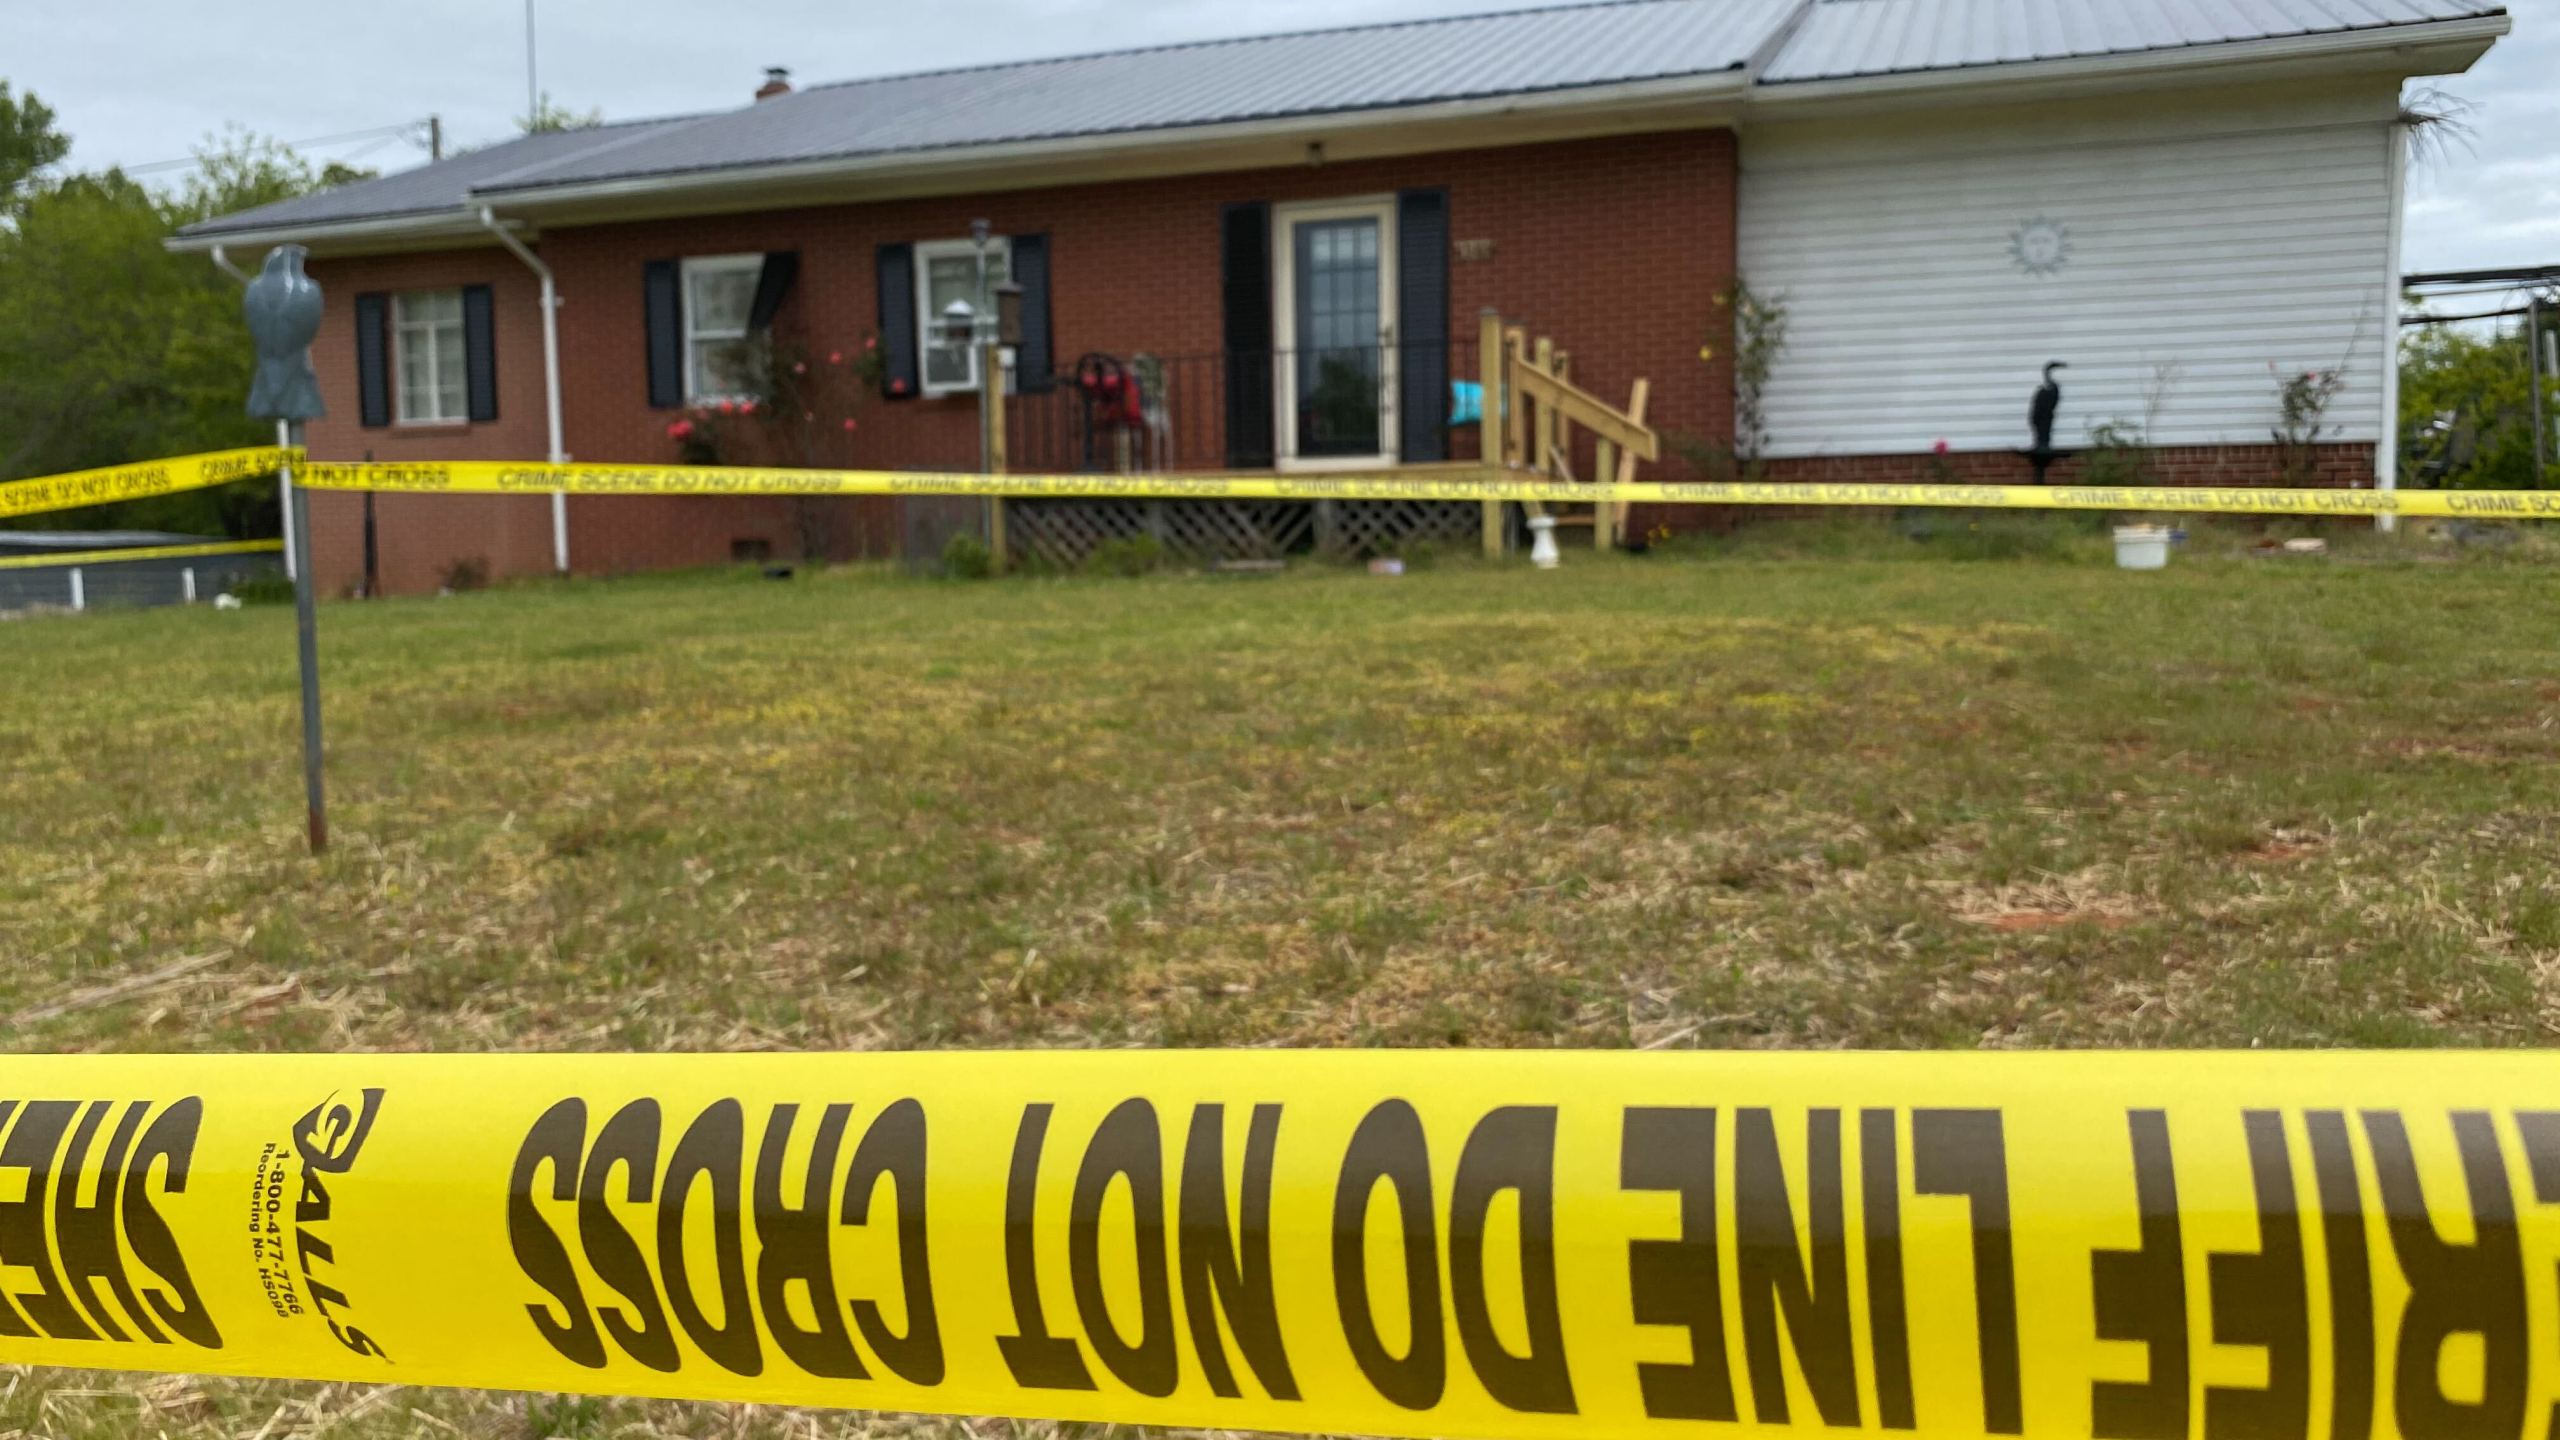 Authorities are investigating a homicide in Henry County on Wednesday, May 13. (Photo: Santiago Melli-Huber/ WFXR News)